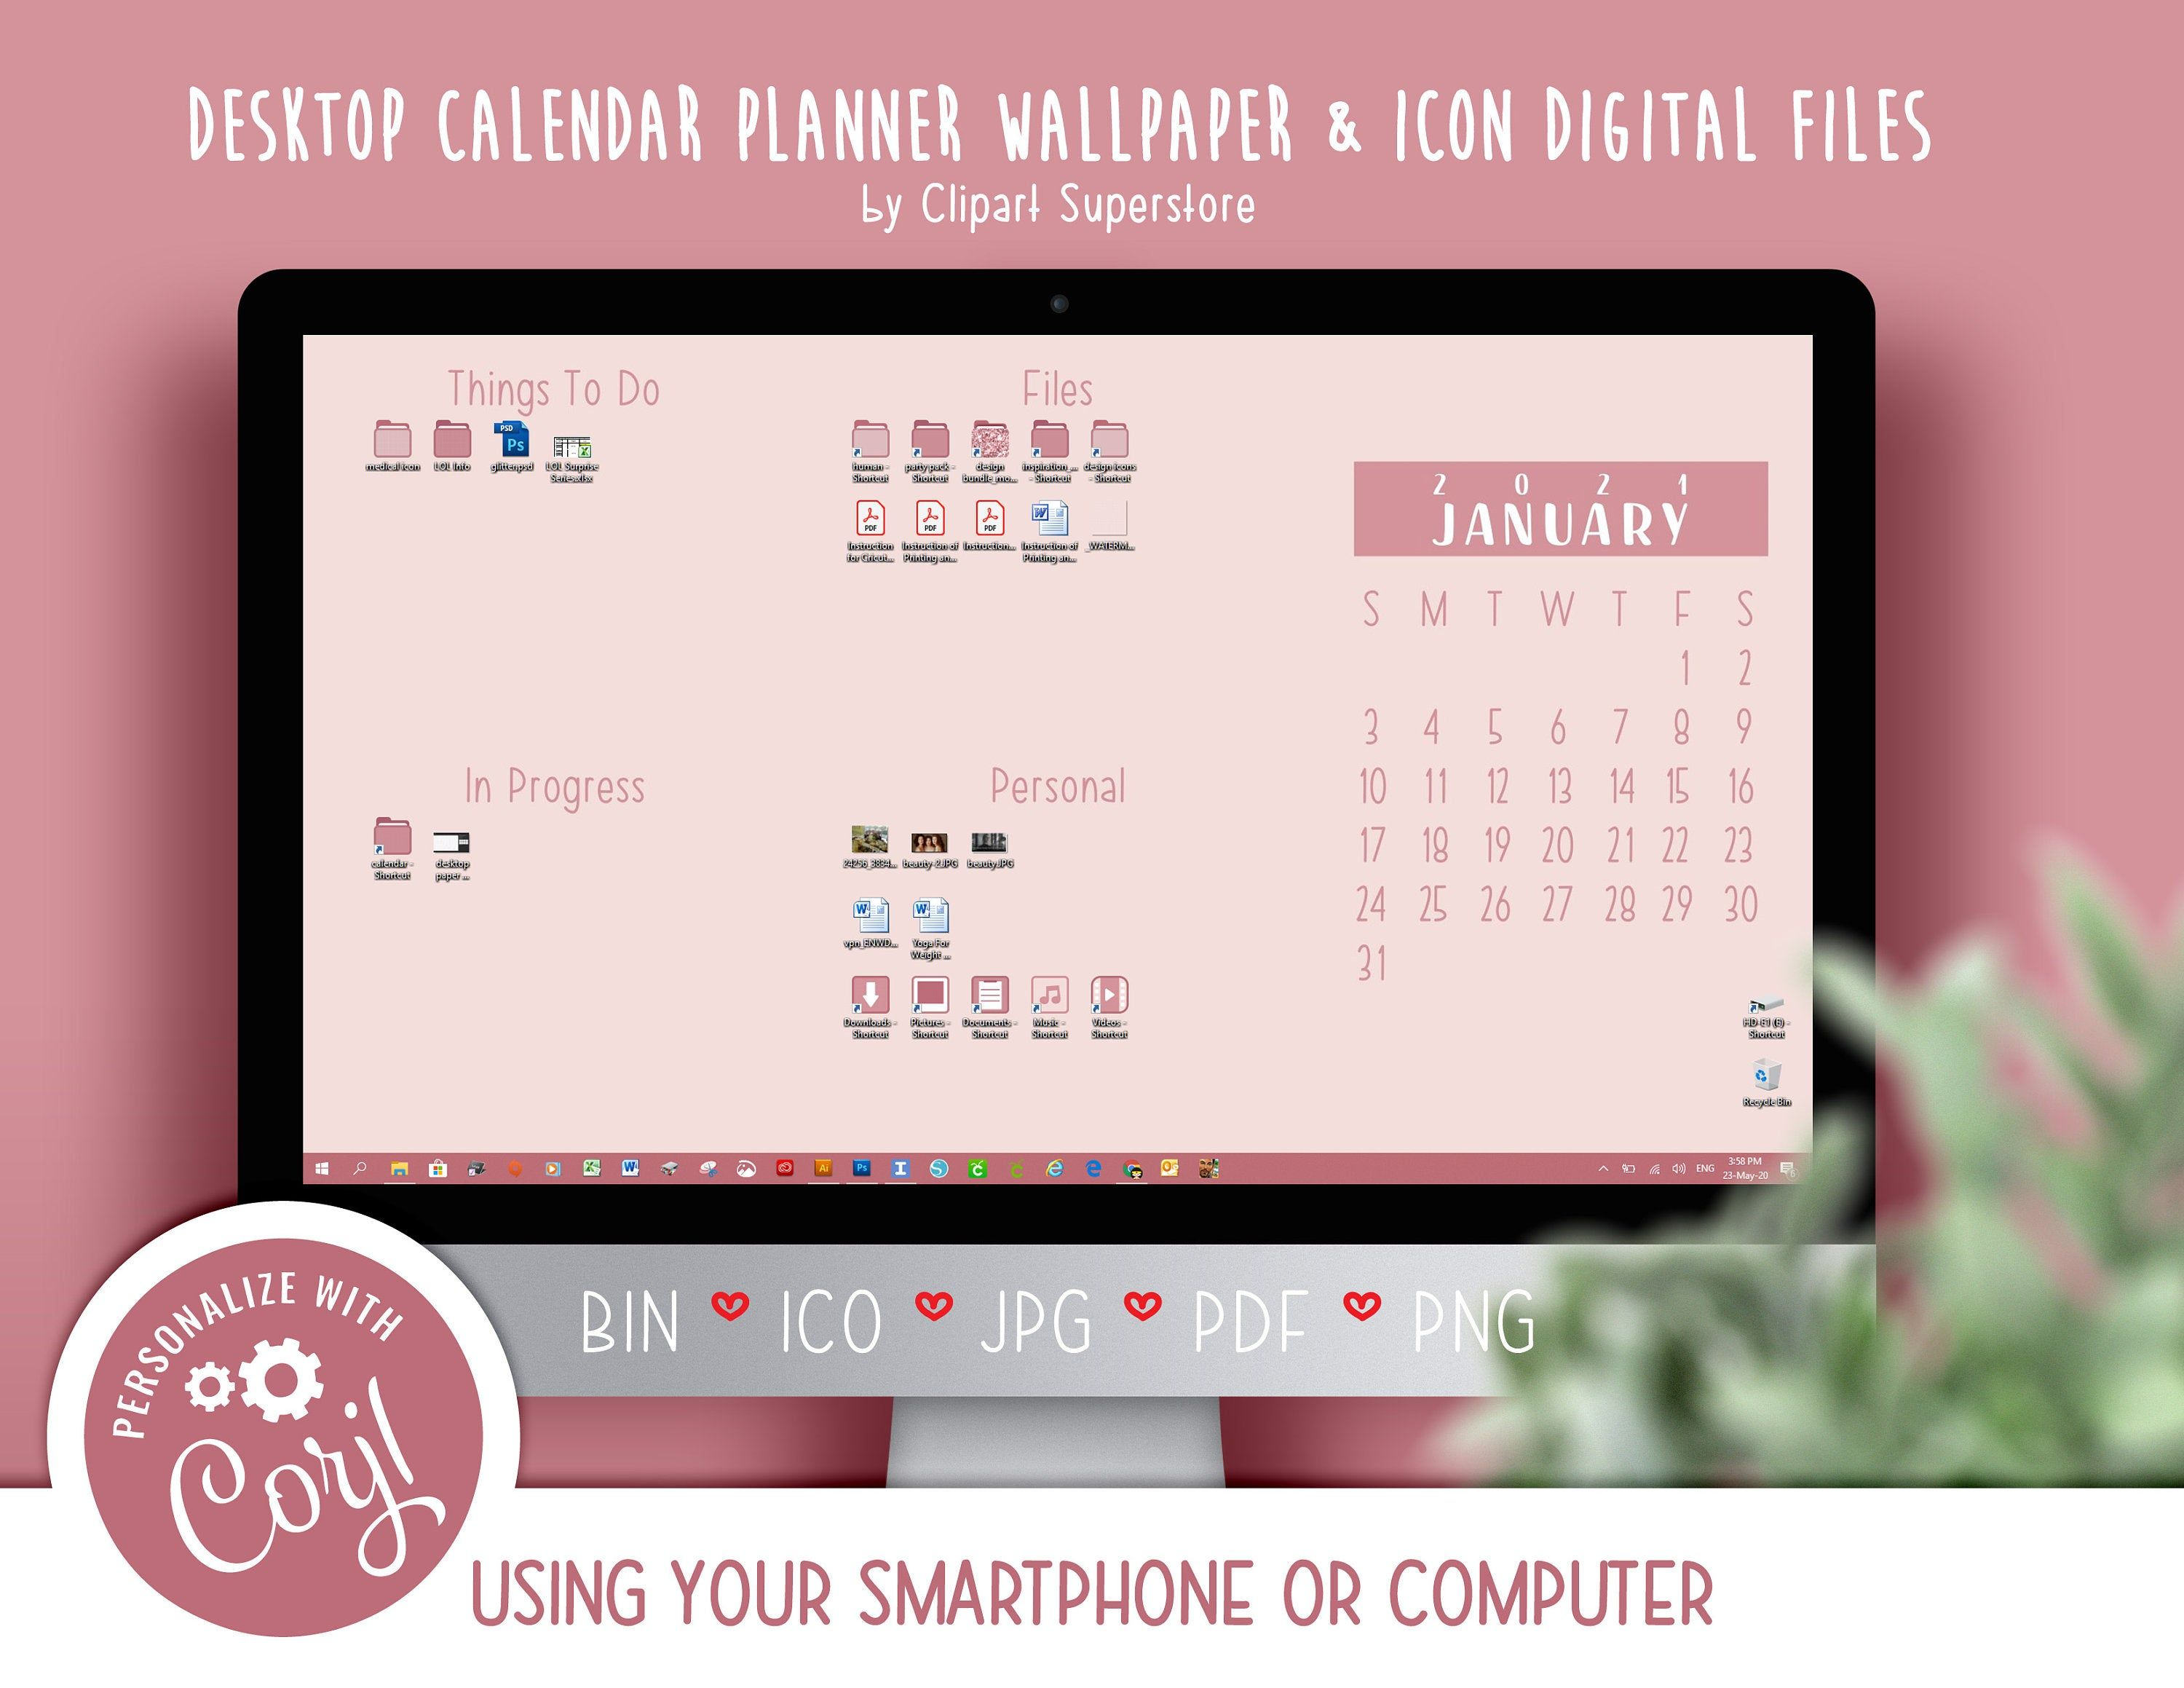 2021 Desktop Calendar Wallpaper Organizer Planner and Icon